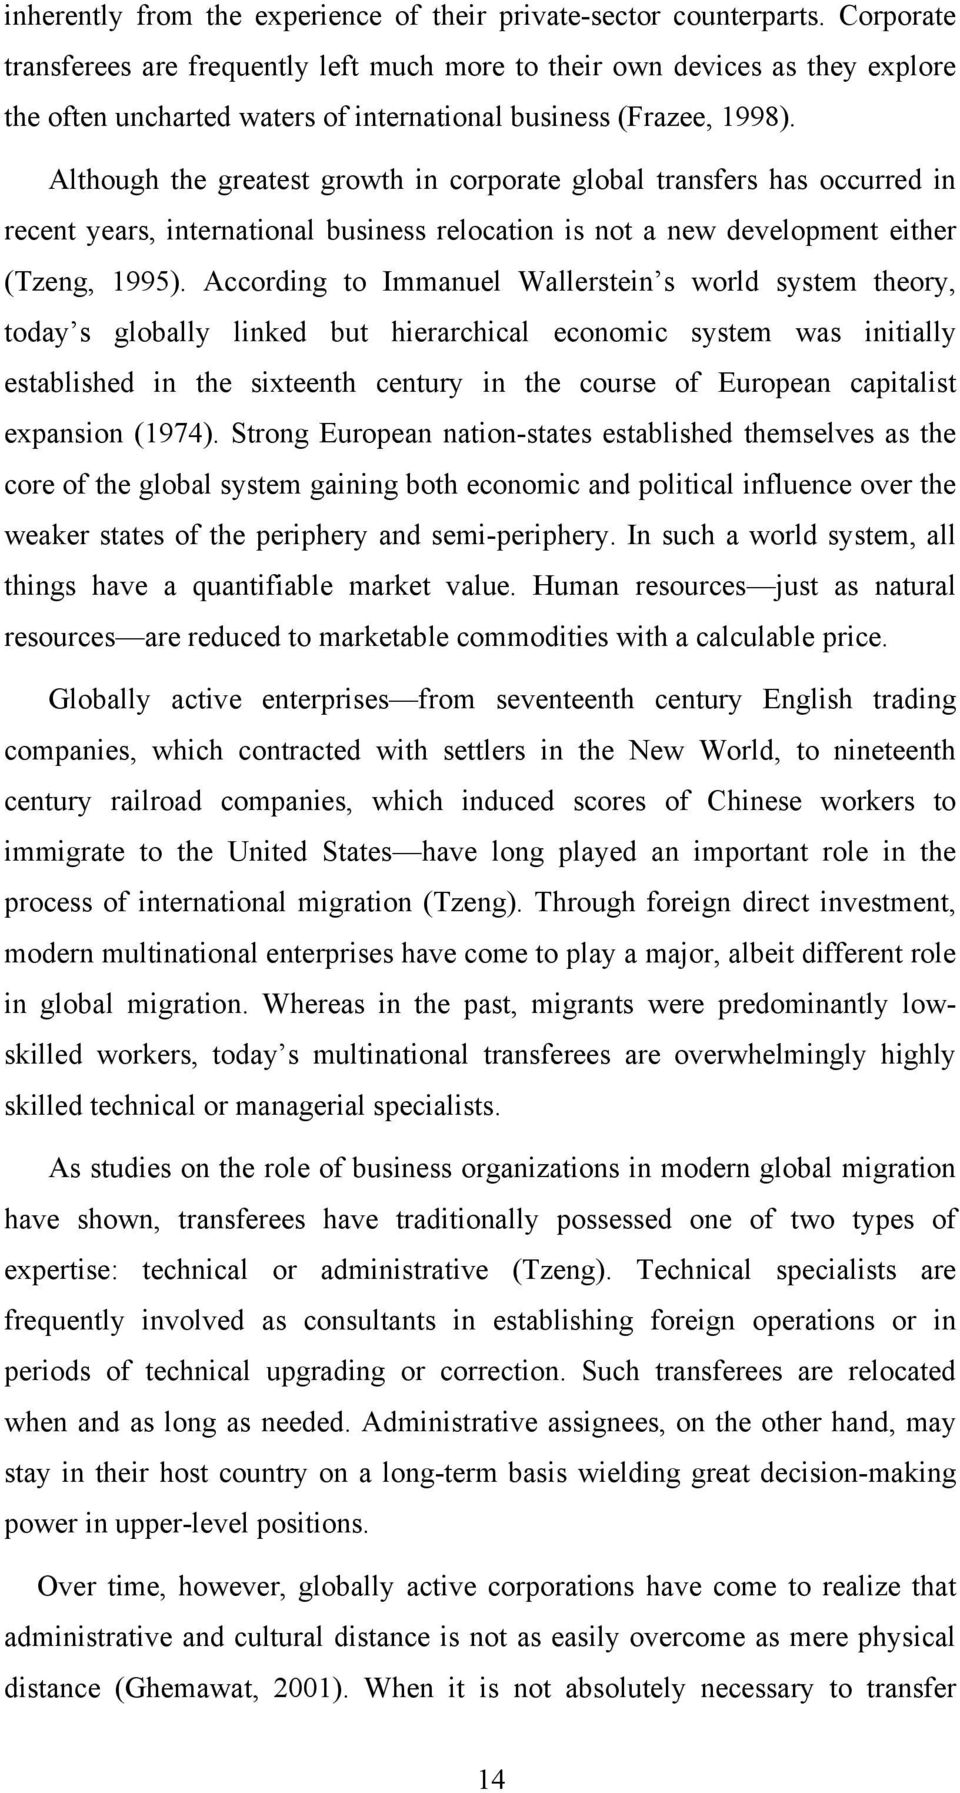 Although the greatest growth in corporate global transfers has occurred in recent years, international business relocation is not a new development either (Tzeng, 1995).